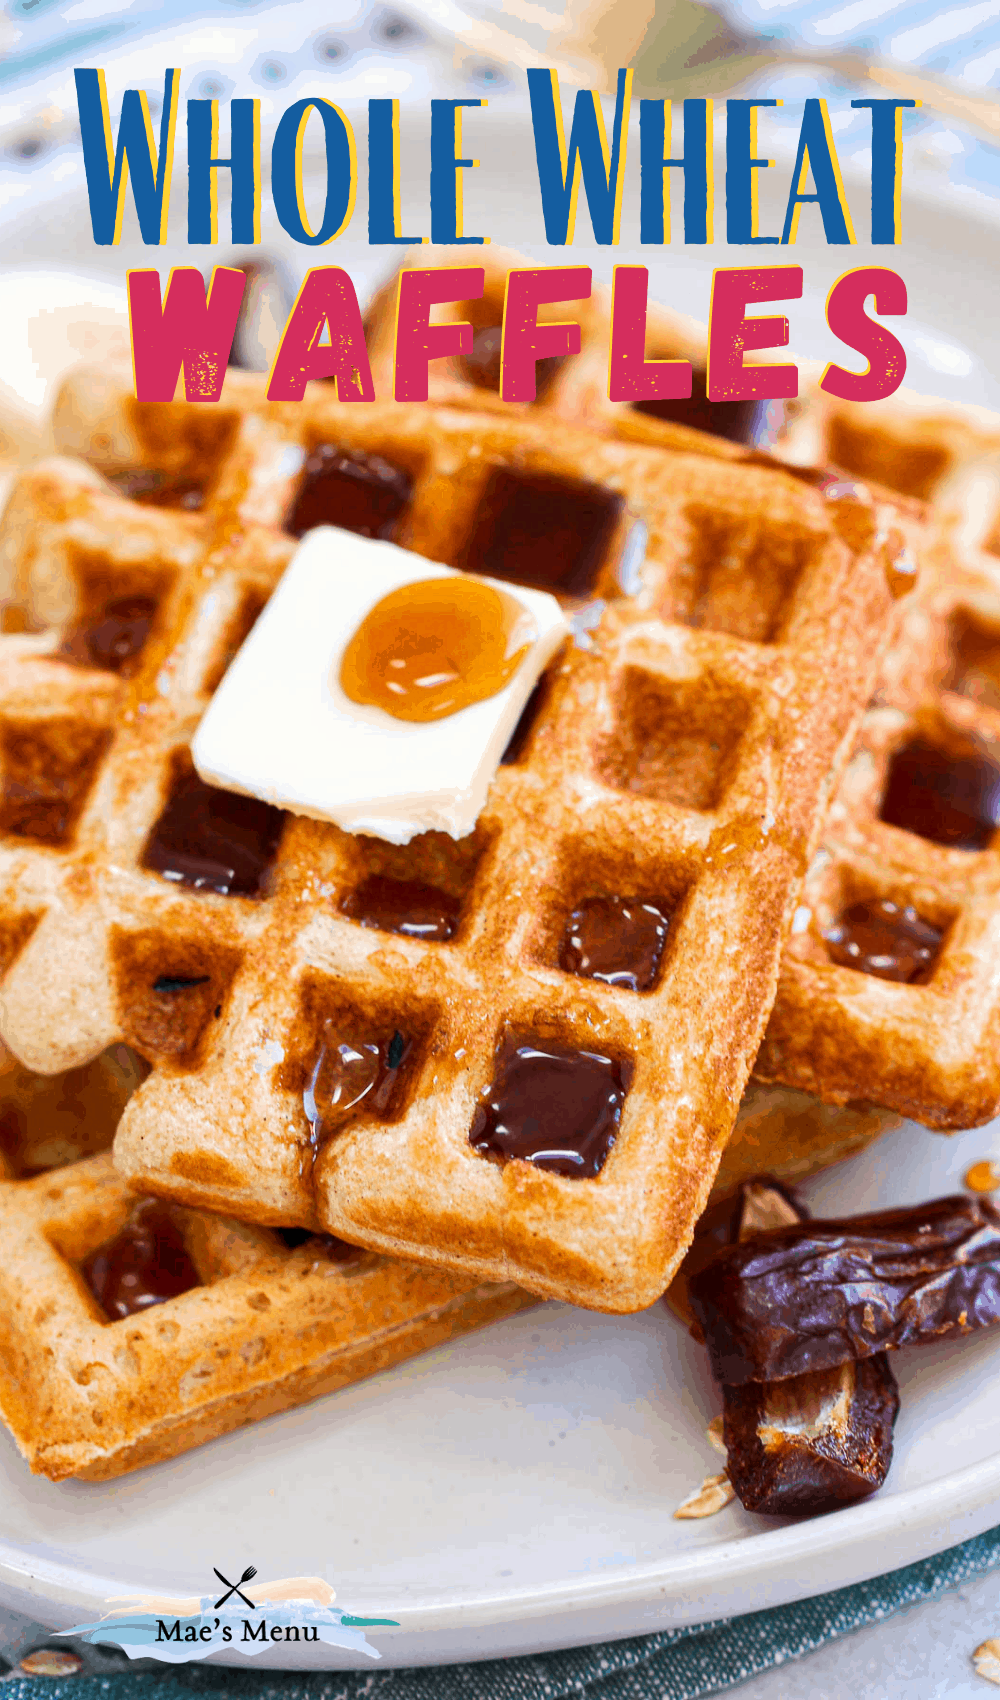 An angled up-close side shot of whole wheat belgian waffles on a white plate next to sliced dates